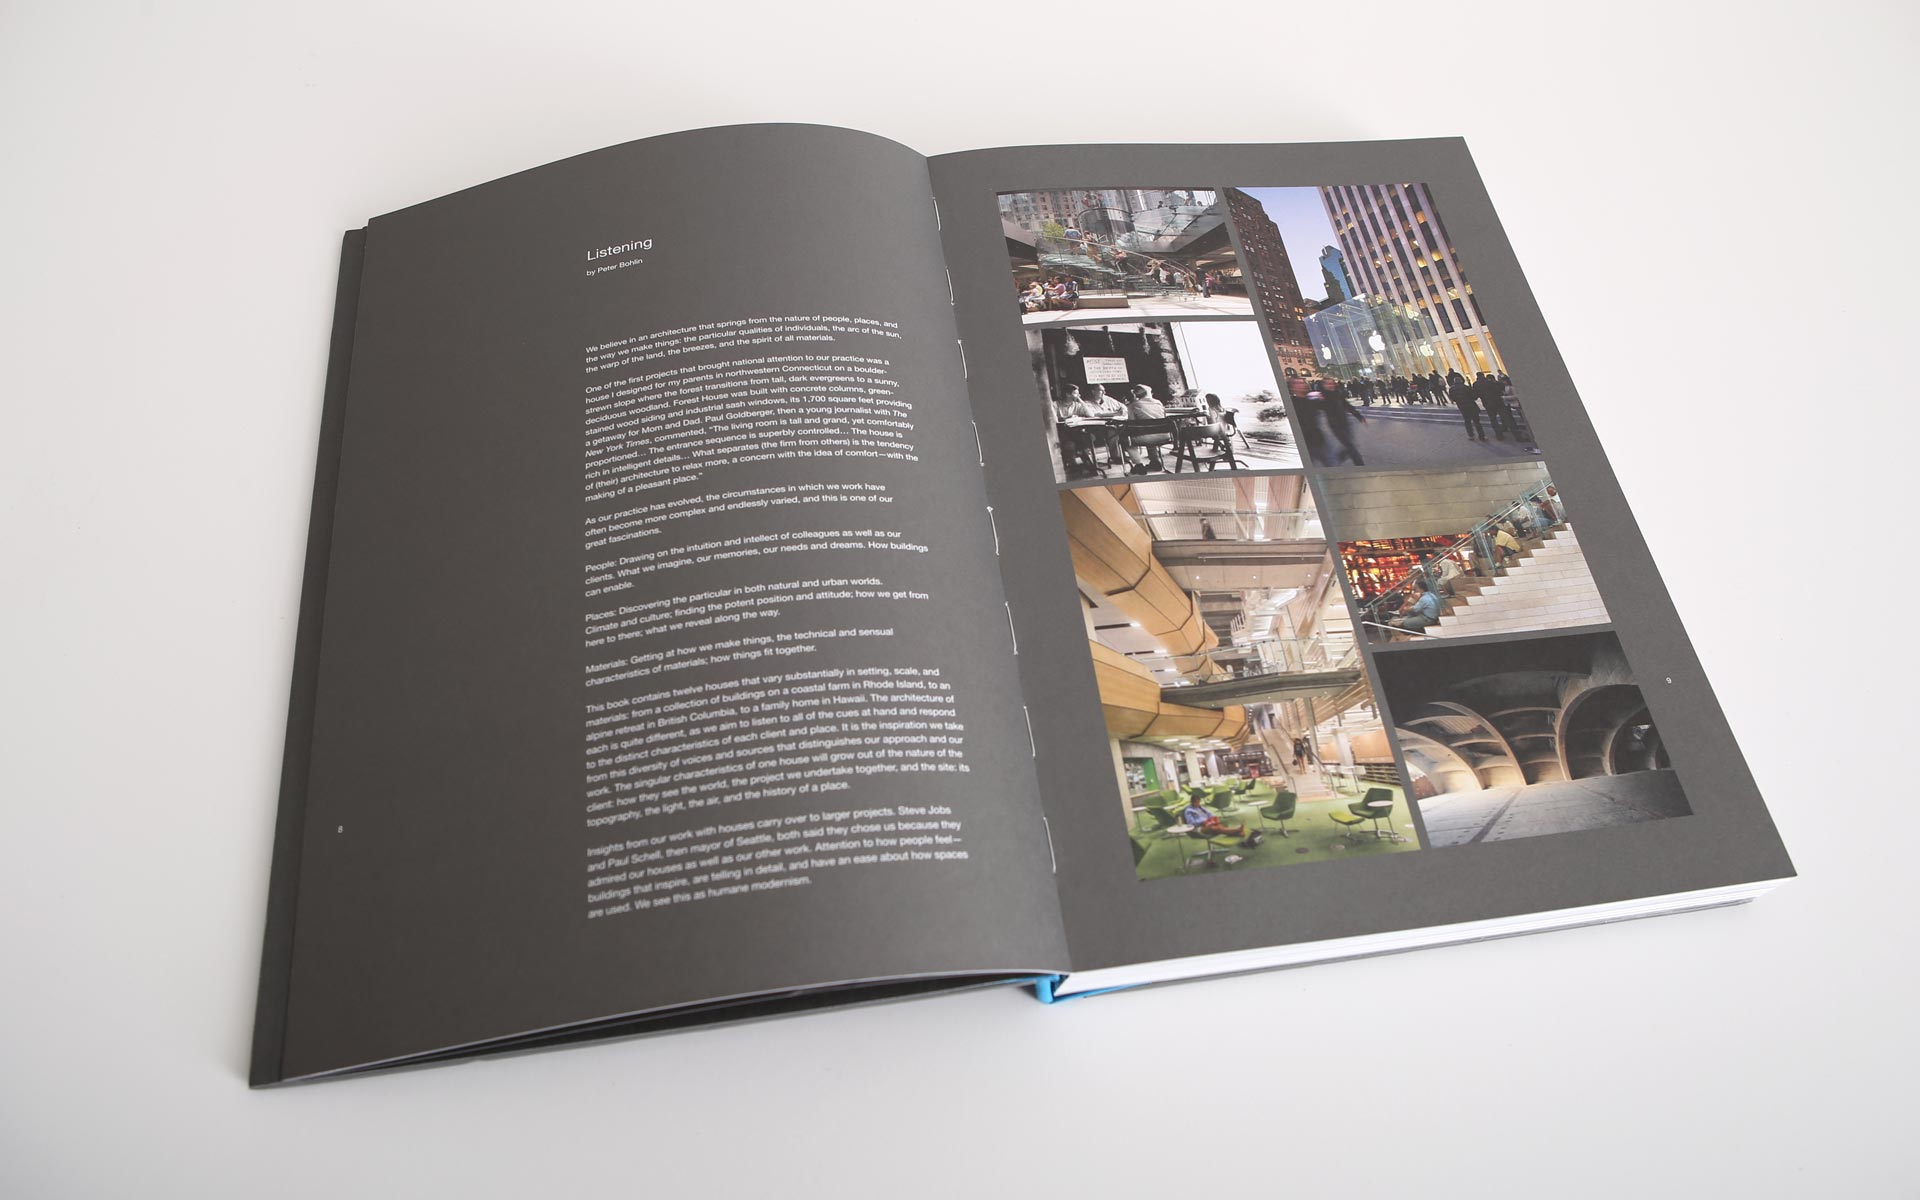 bcj-seattle-architecture-book-design-3